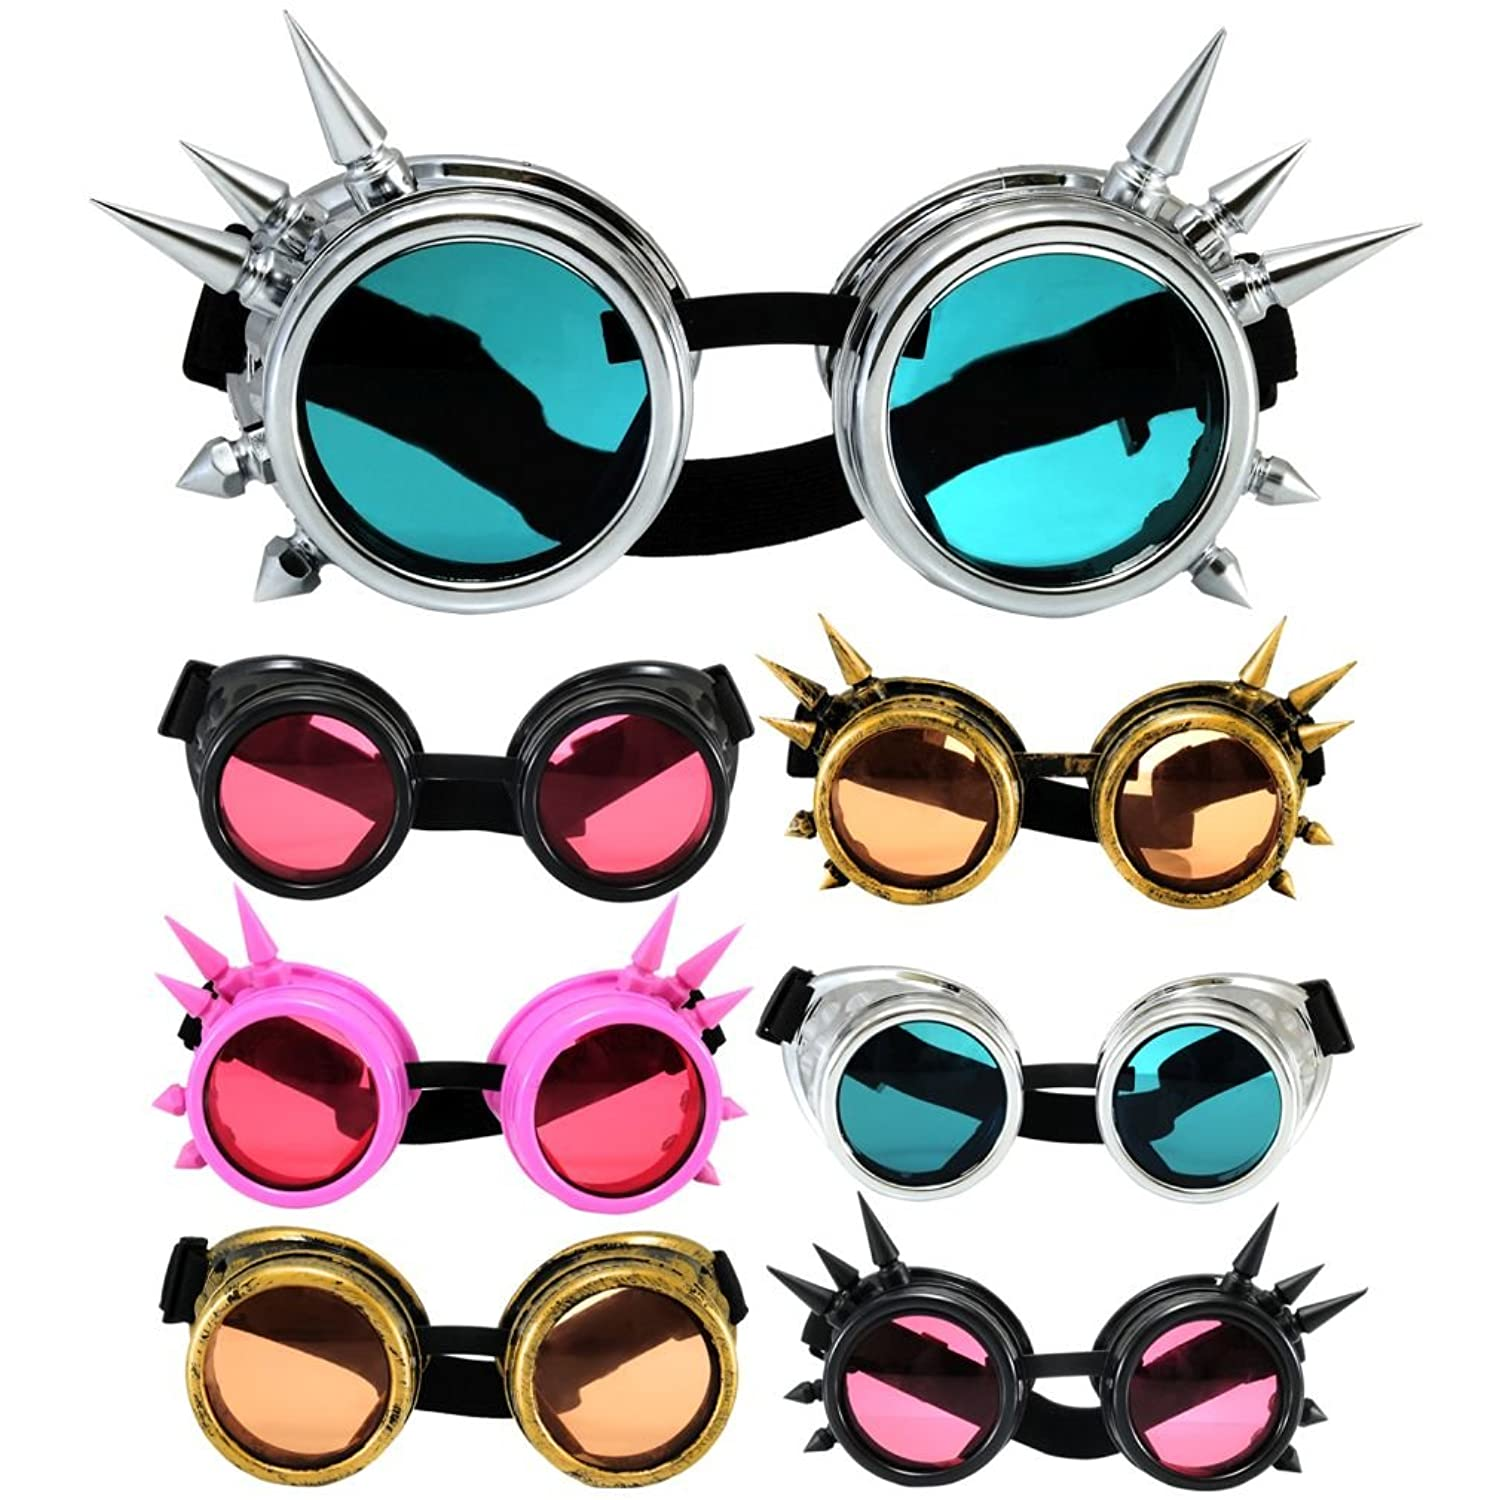 Steampunk Antique Copper Cyber Goggles Rave Goth Vintage Victorian like Sunglasses all pictures (goggles studs silver) sn13Z